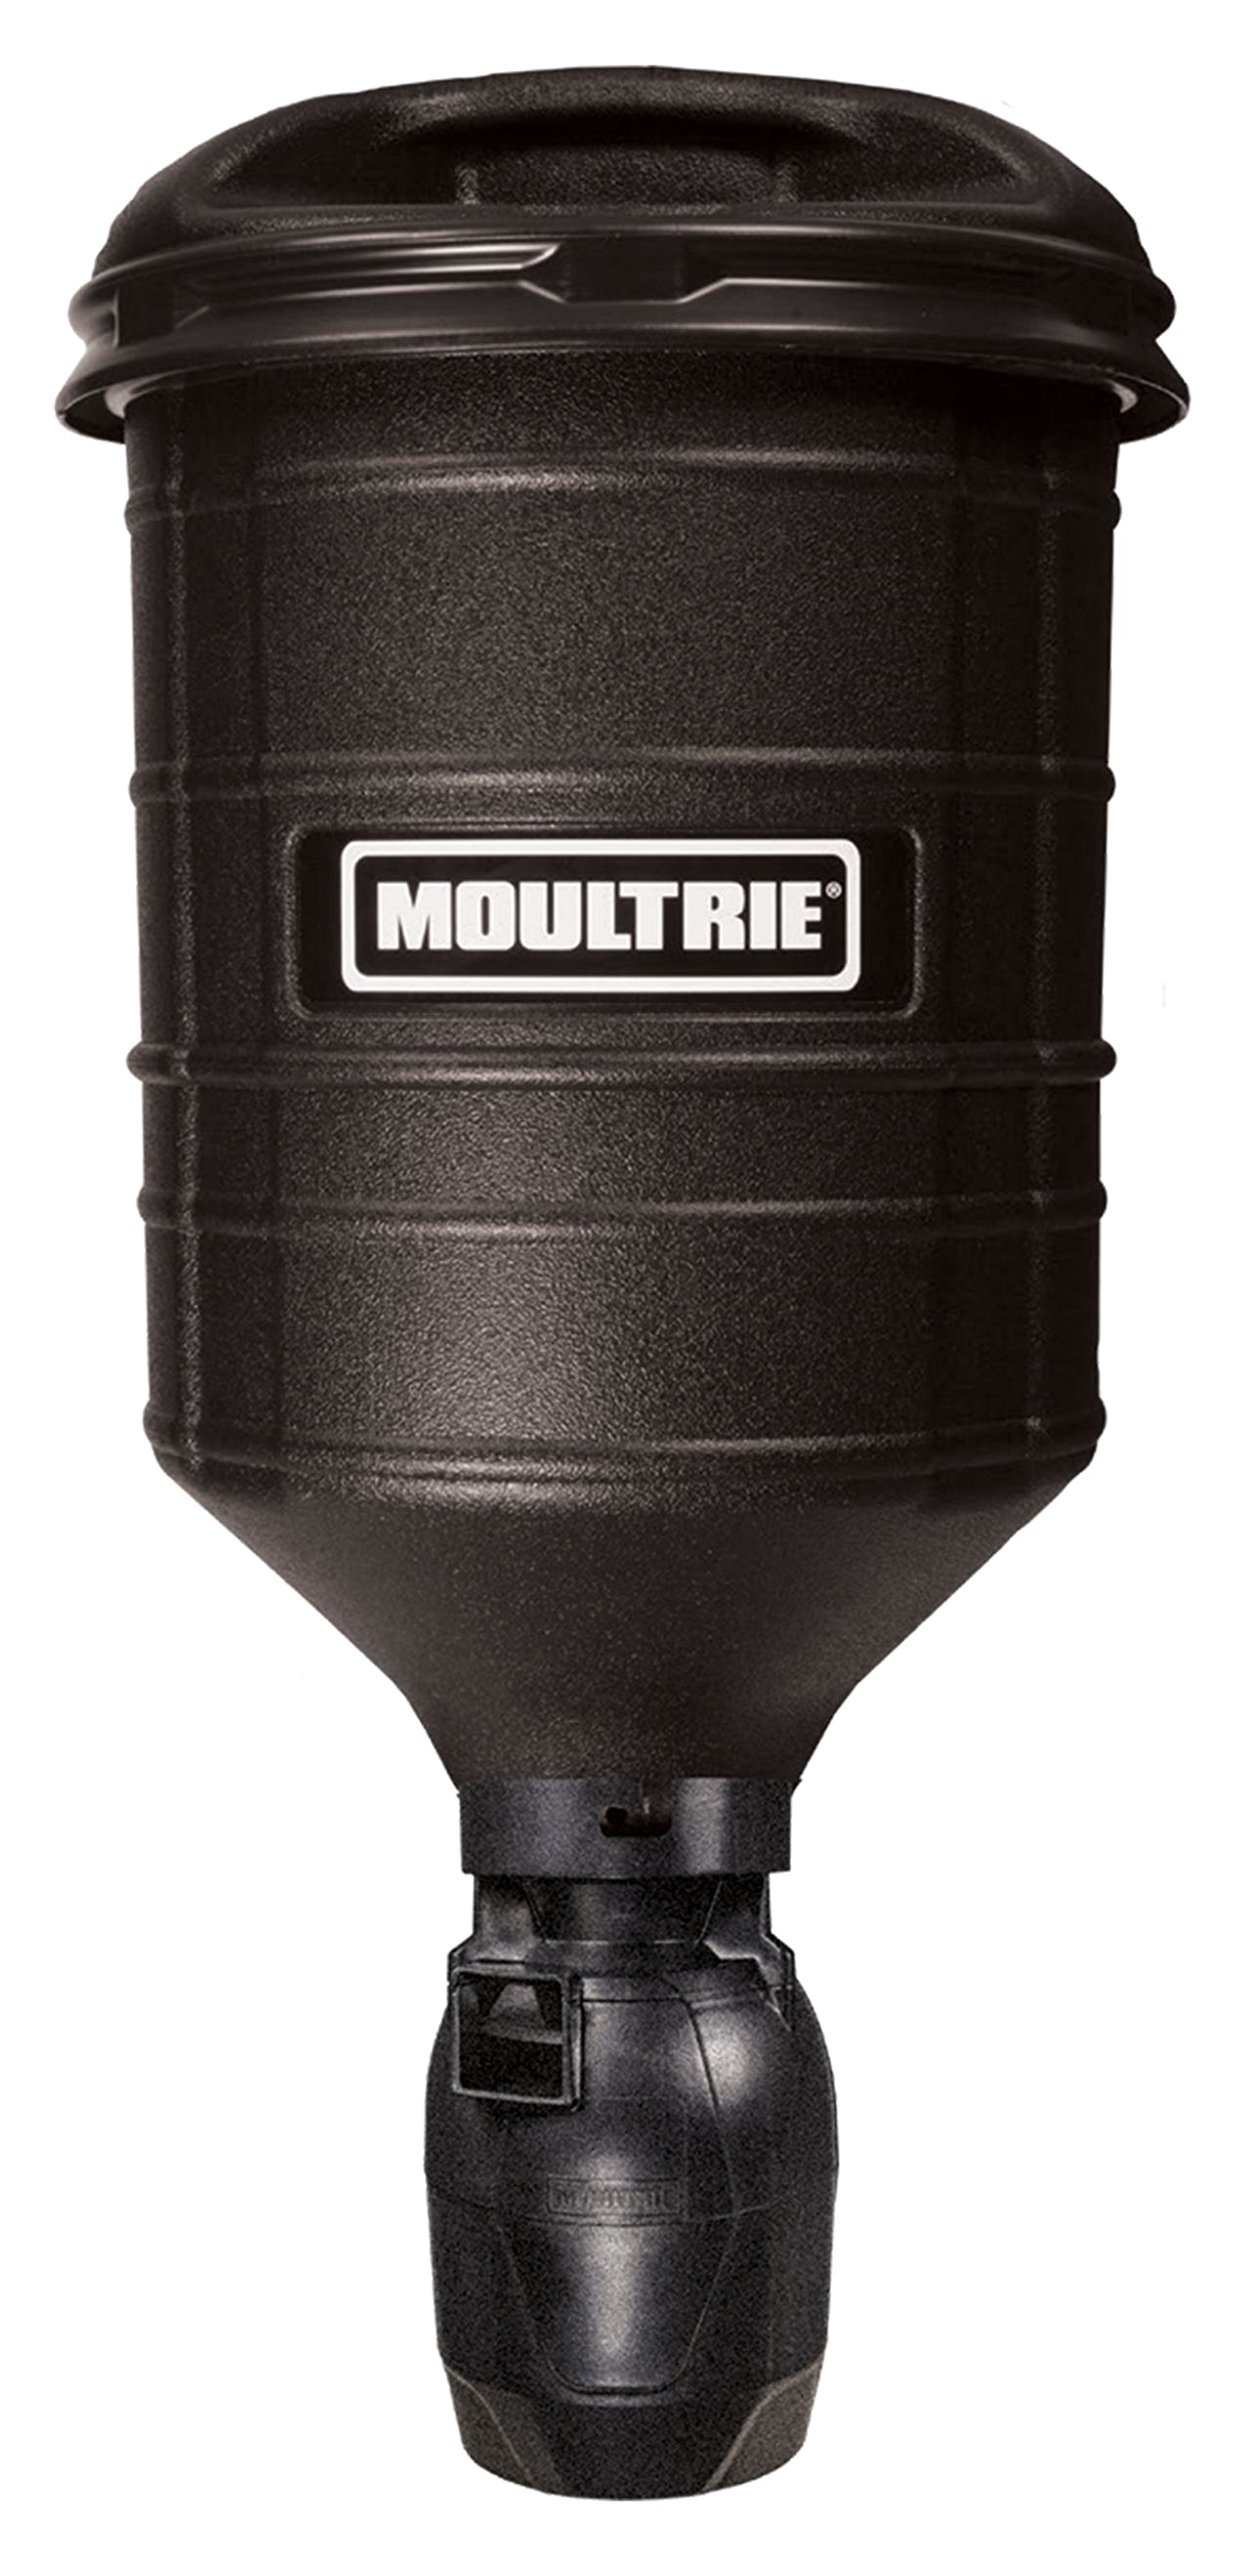 Moultrie 15 Gallon Directional Hanging by Moultrie